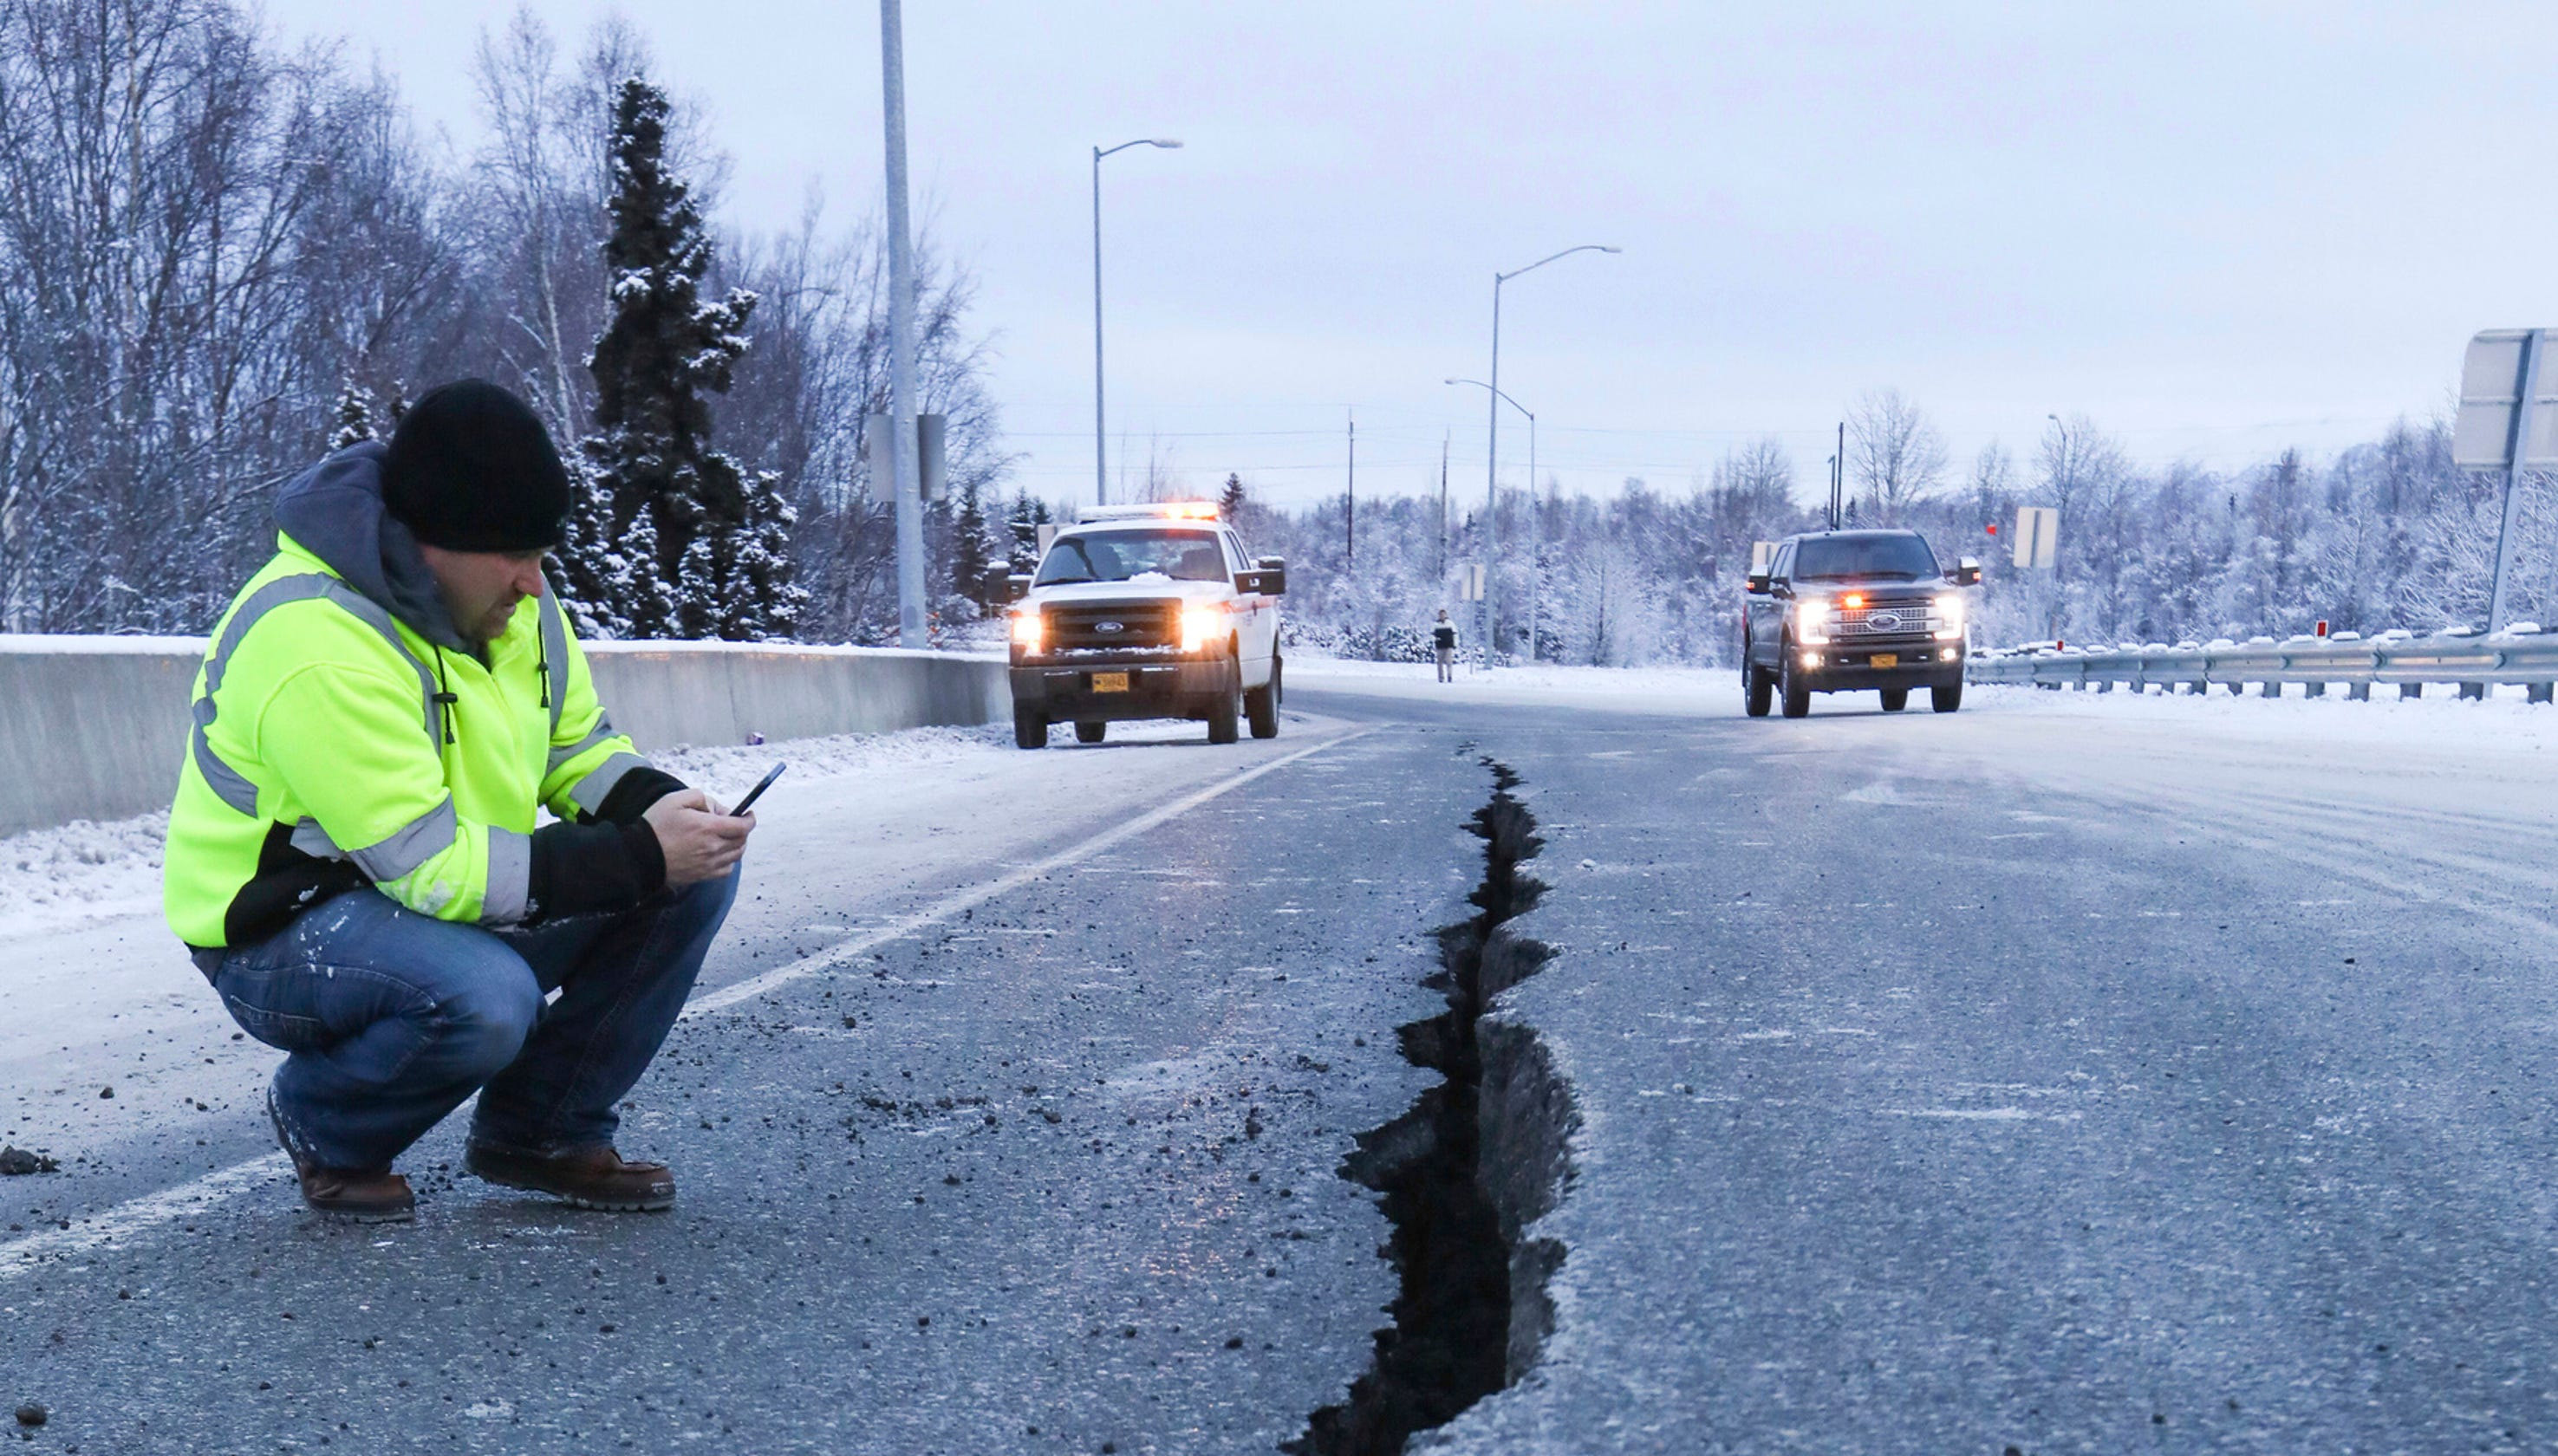 alaska earthquake - photo #4